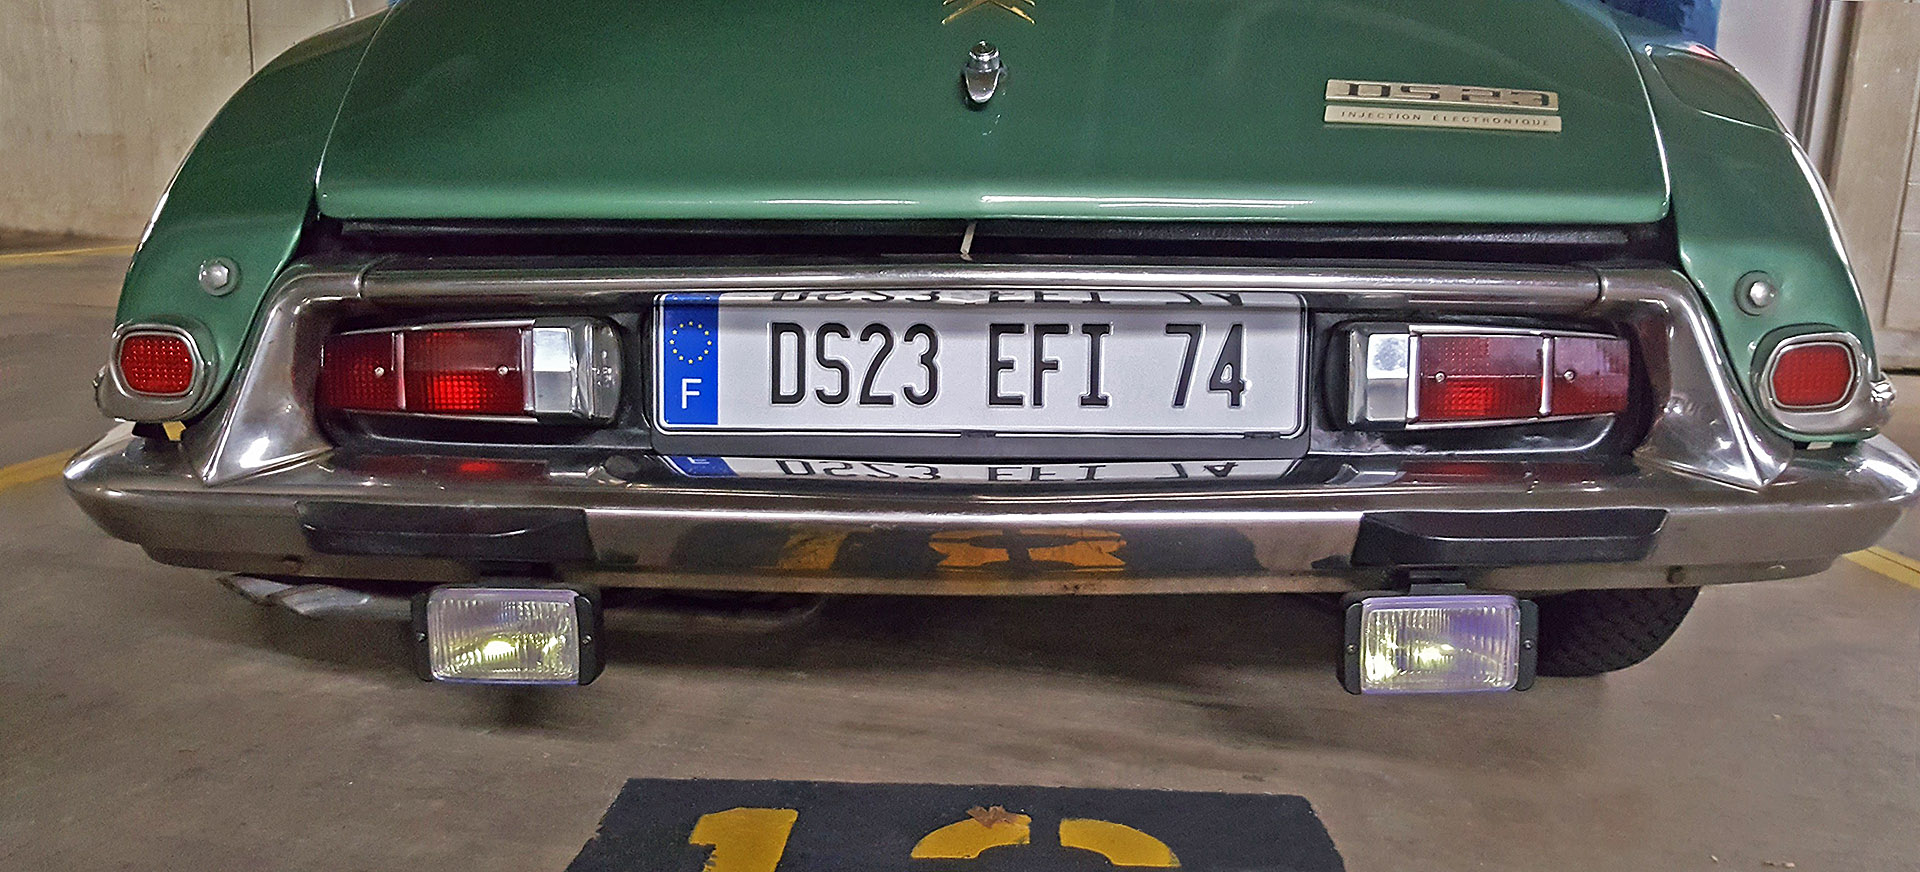 Citroen DS23 EFi Pallas 1974 - new EU licence plate fitted to rear.jpg